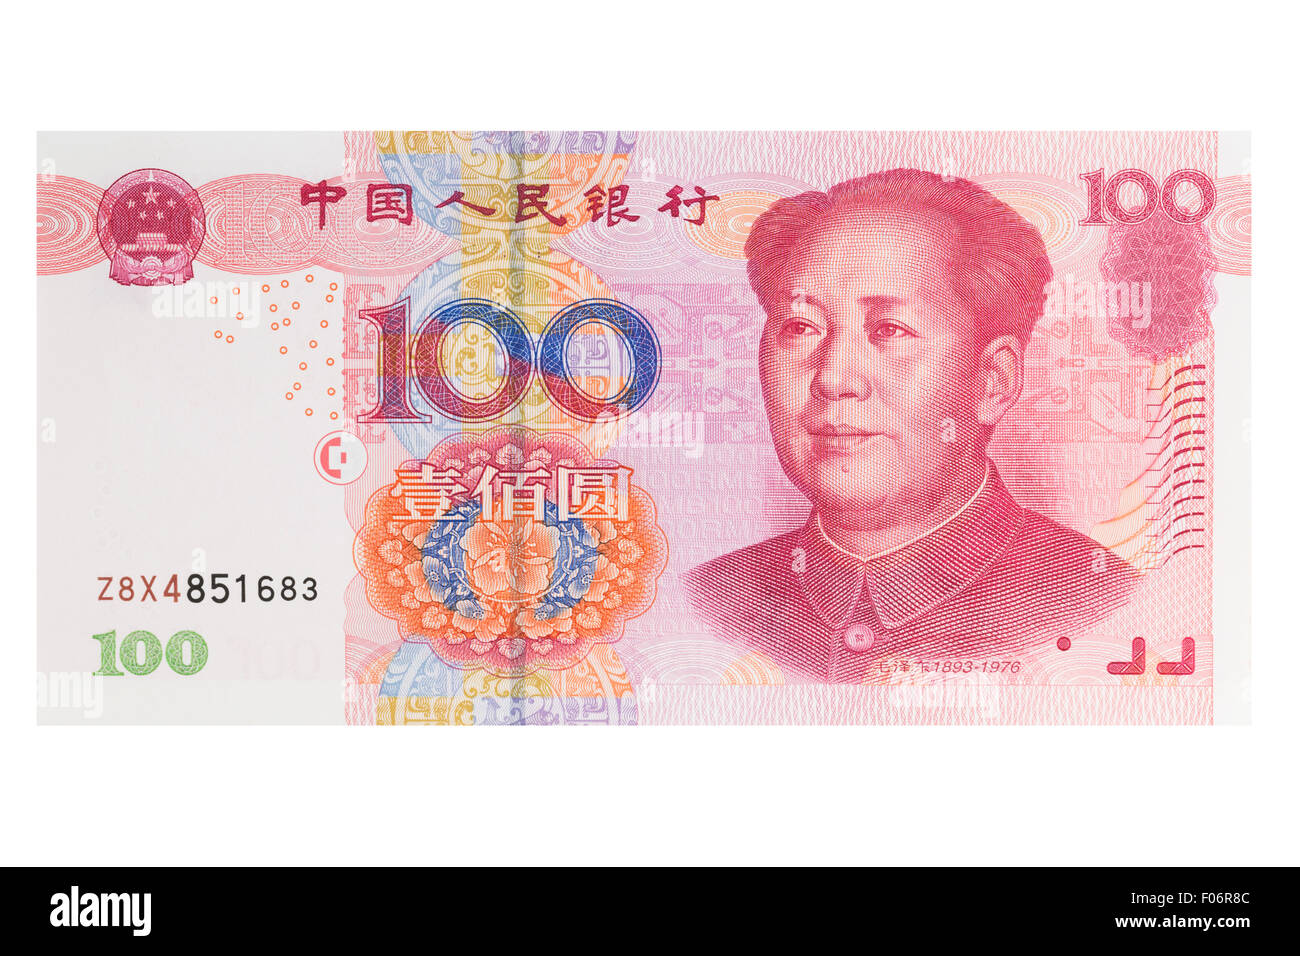 One hundred Yuan banknote on a white background - Stock Image